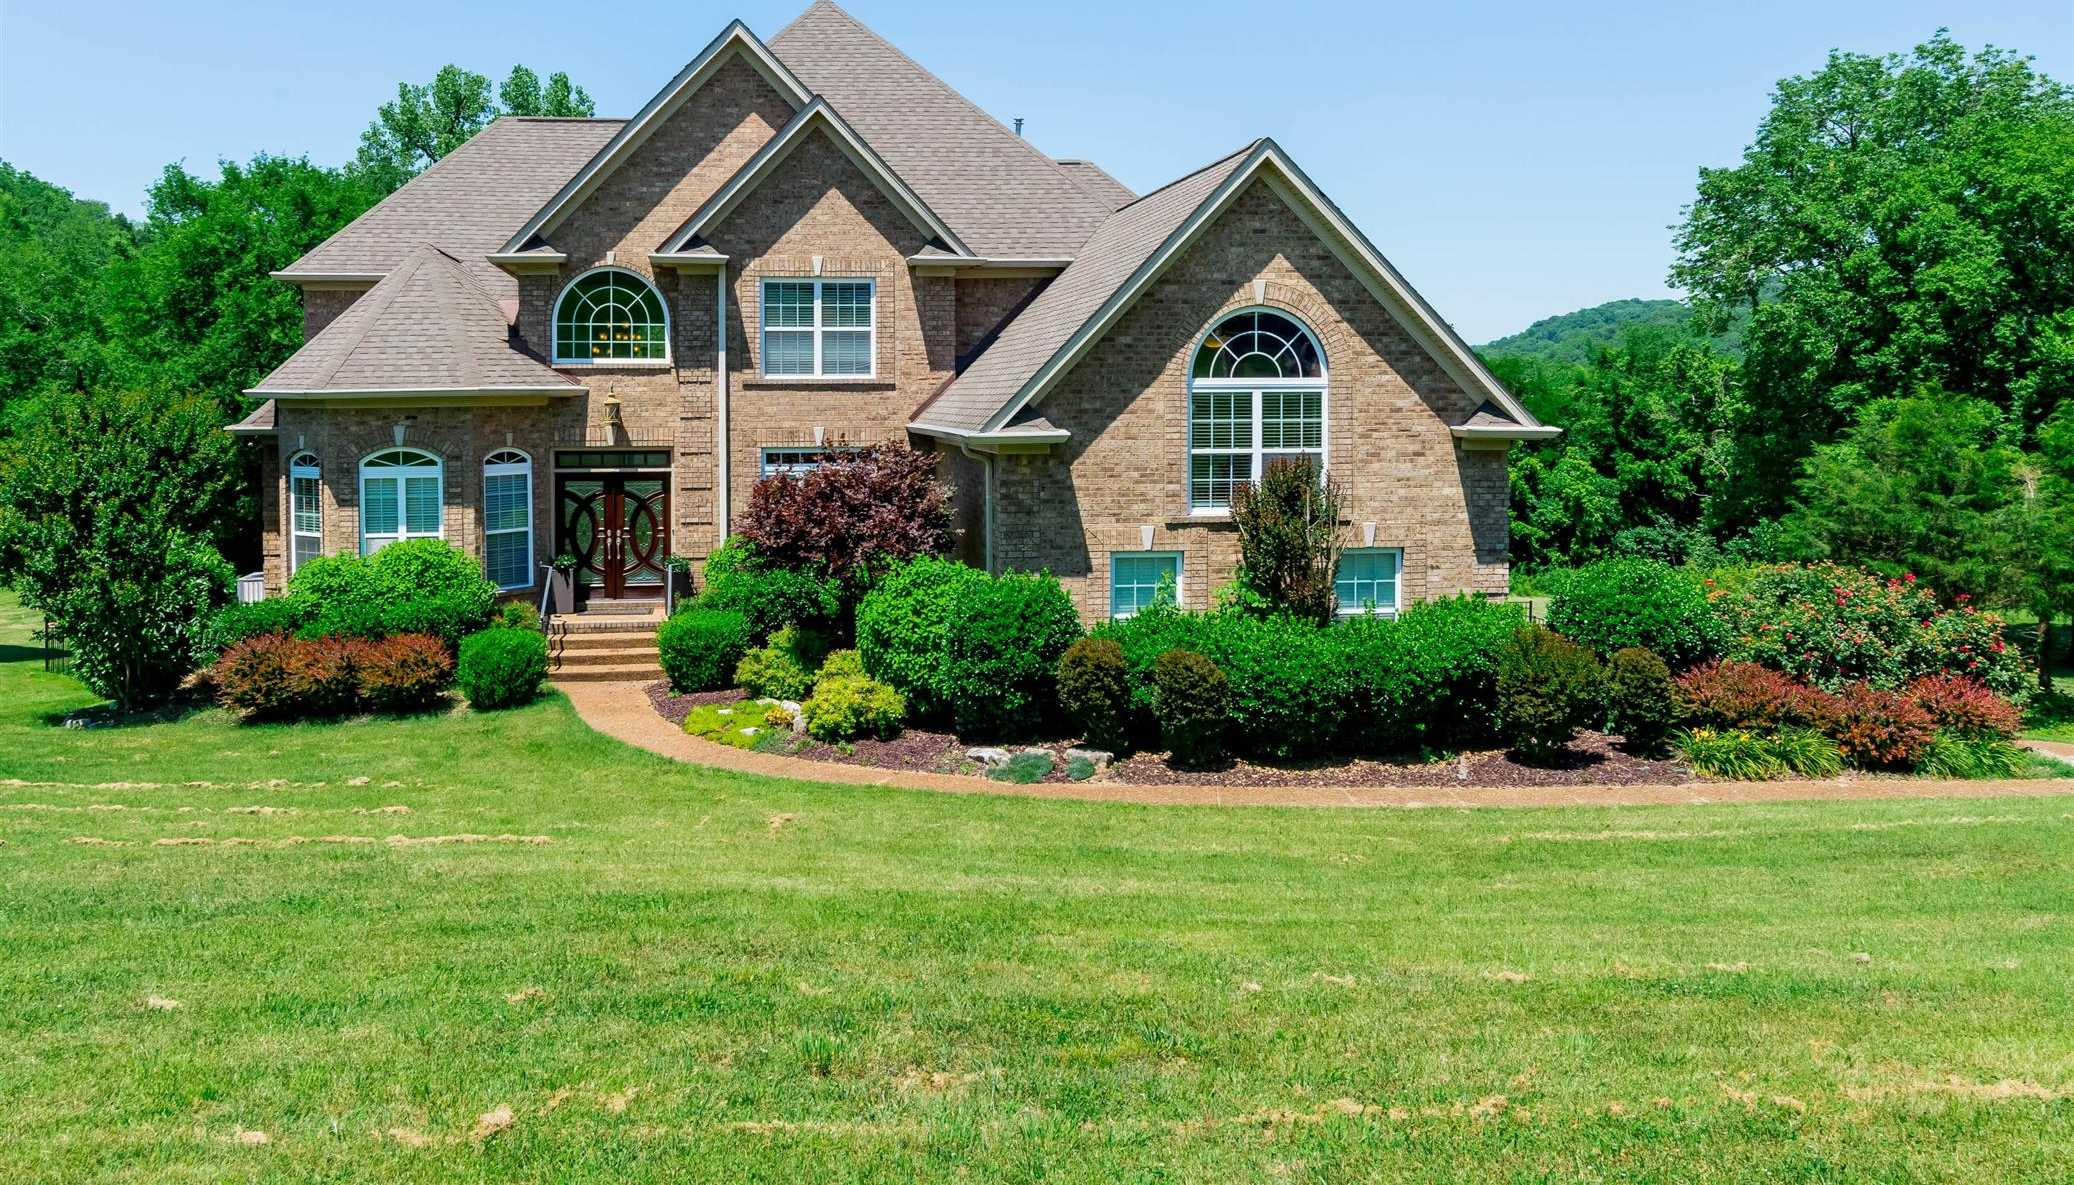 $719,900 - 6Br/5Ba -  for Sale in Ole Orchard, Whites Creek